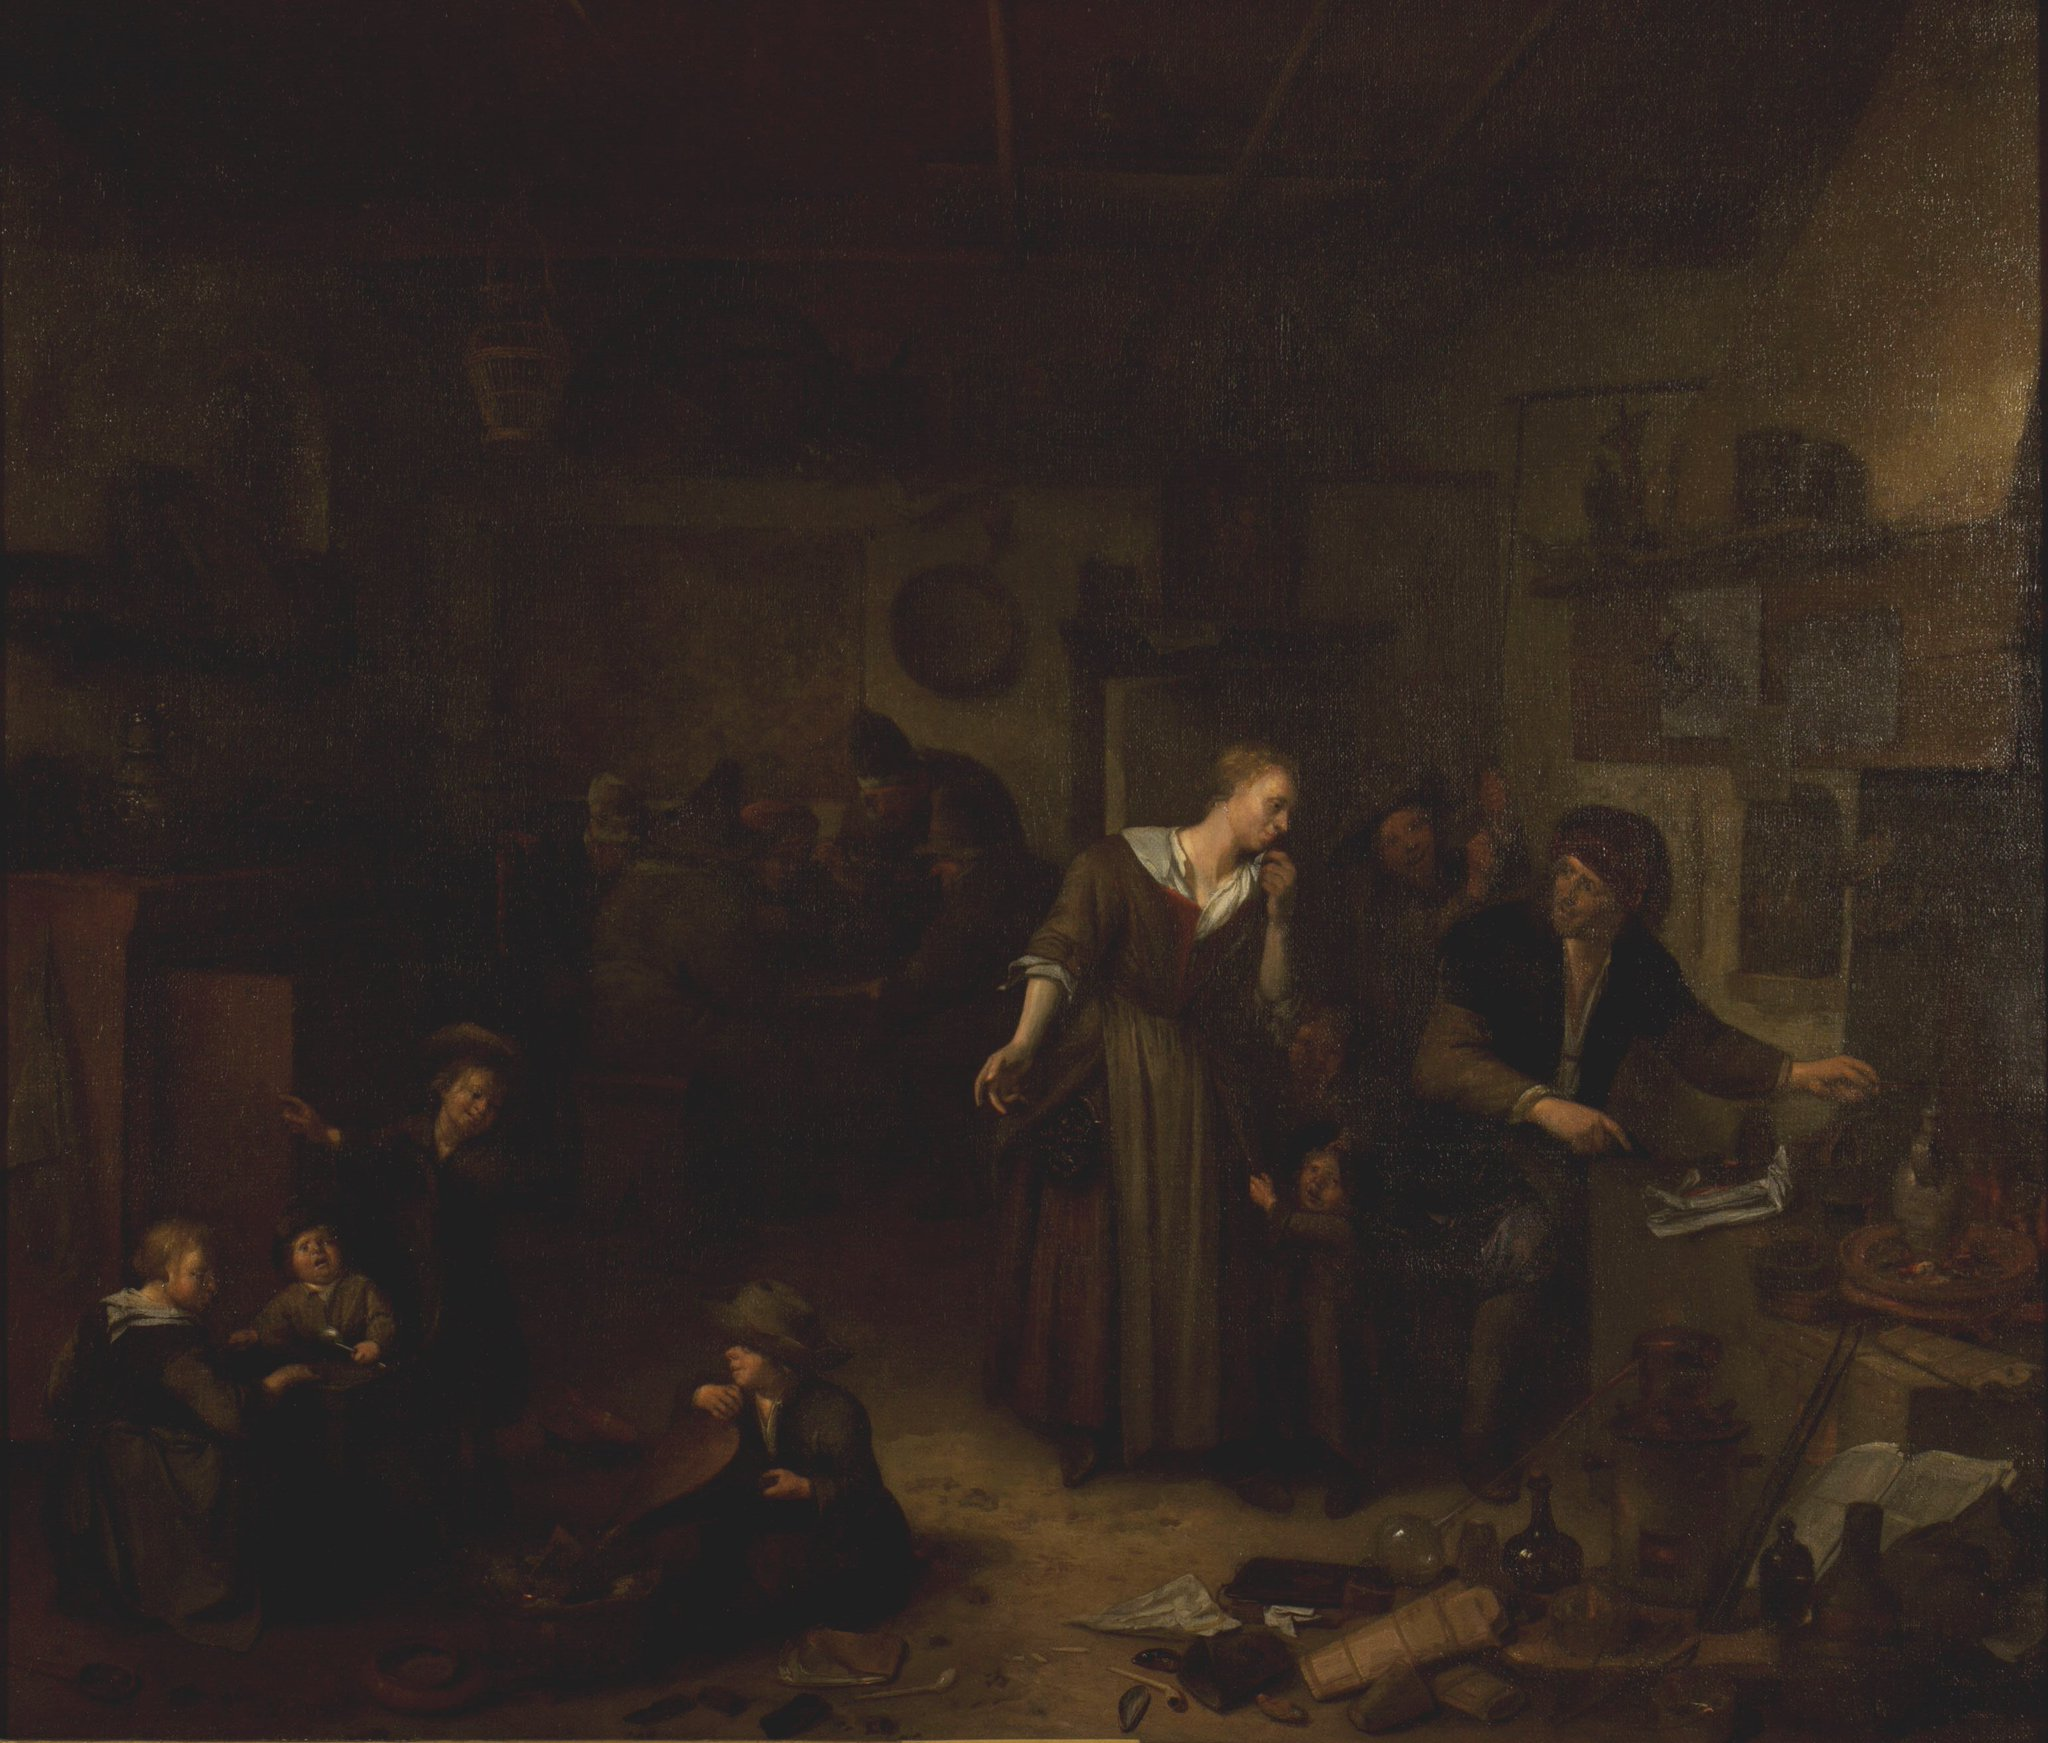 In satirical, mocking pictures of alchemists, women are often the voice of reason in the family... #MuseumMonday #WomensHistoryMonth https://t.co/KiWayYzoEI